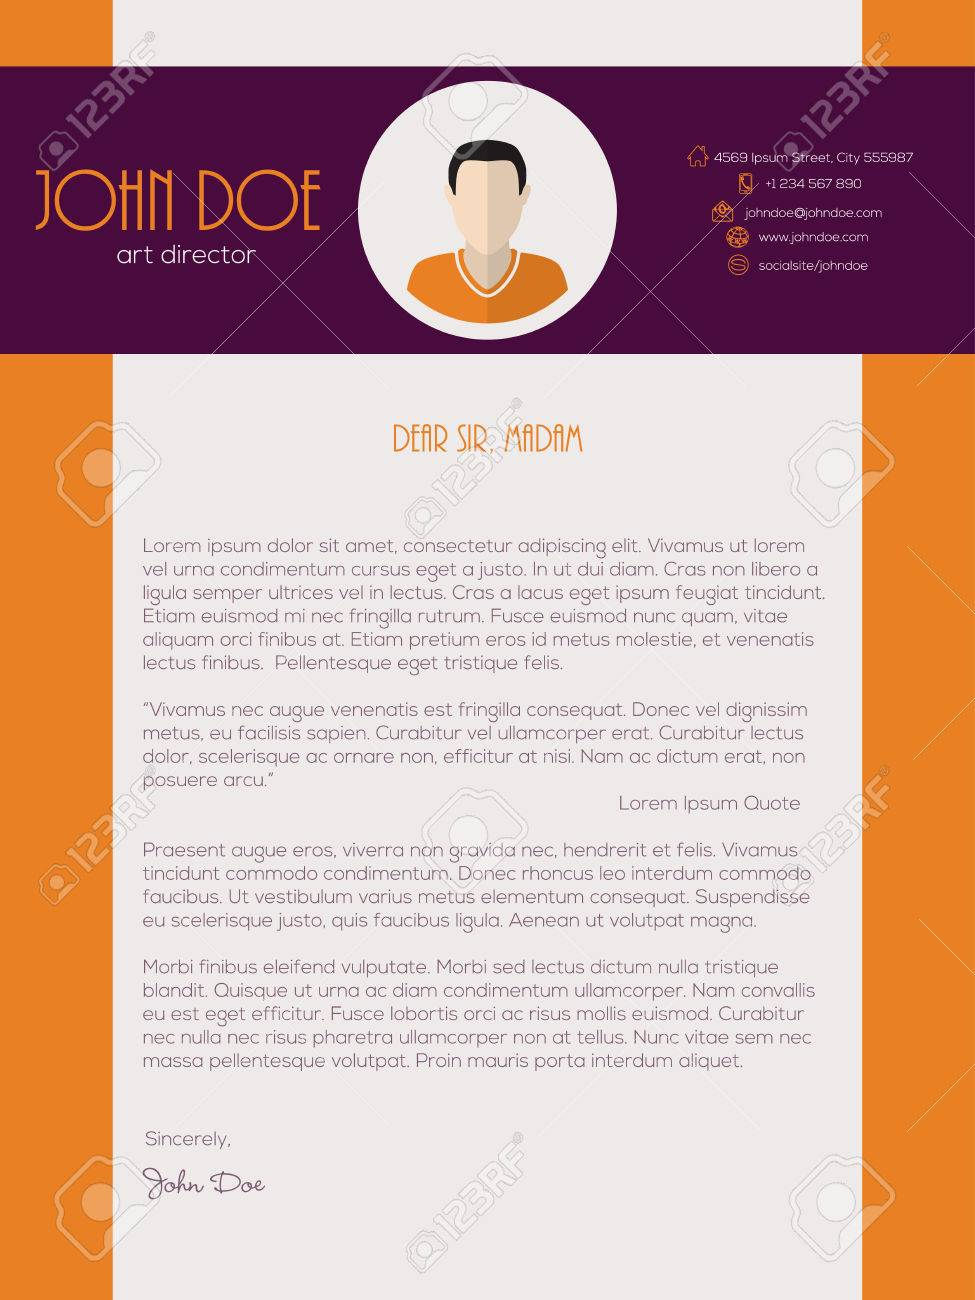 Modern Cover Letter Design With Orange Purple Colors Stock Vector